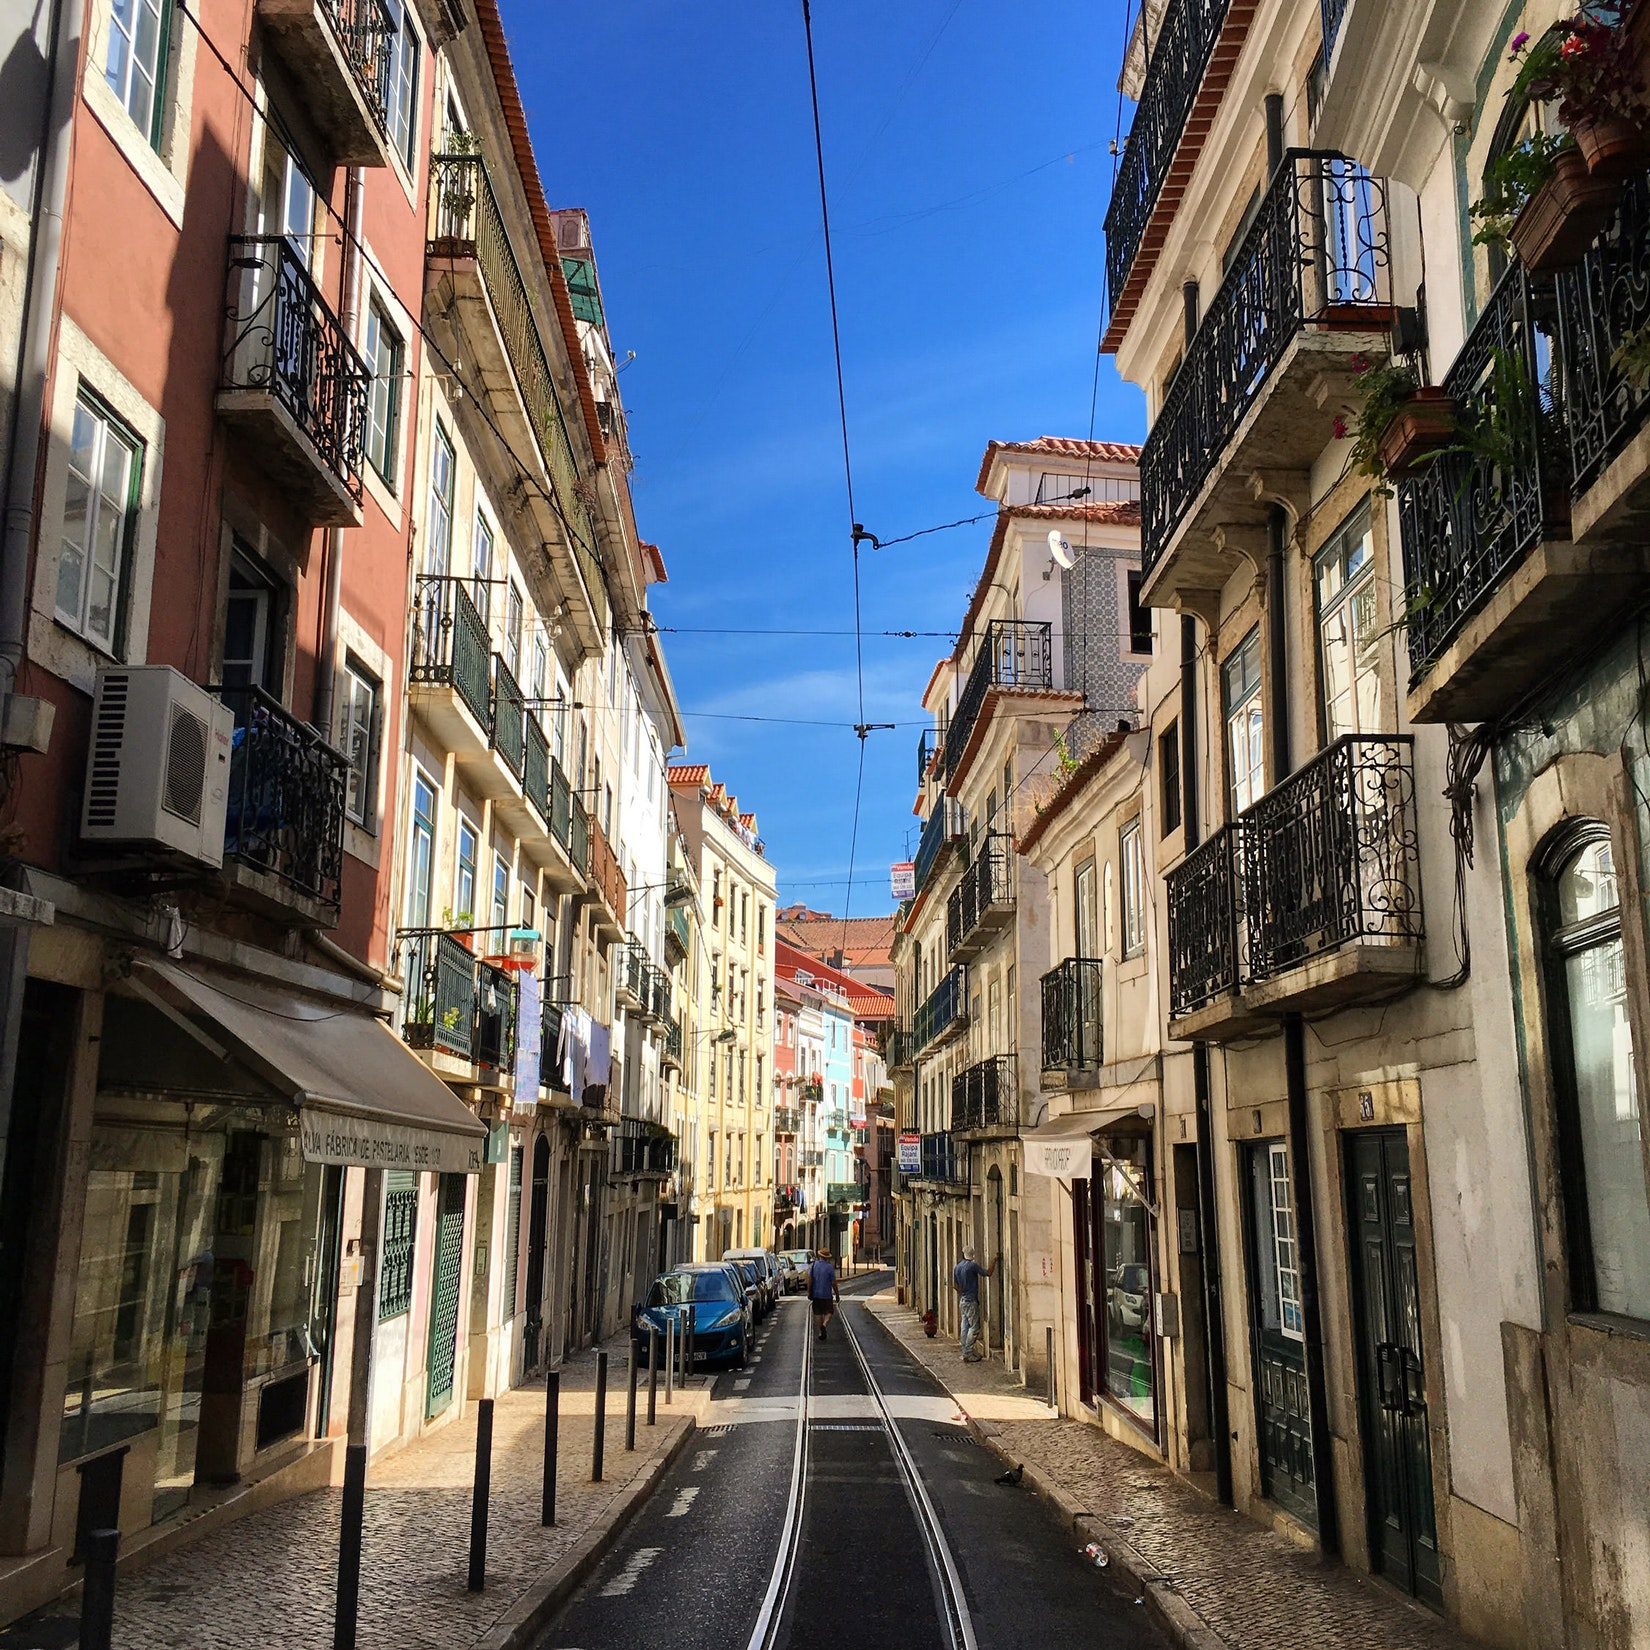 Perspectives from Bairro Alto